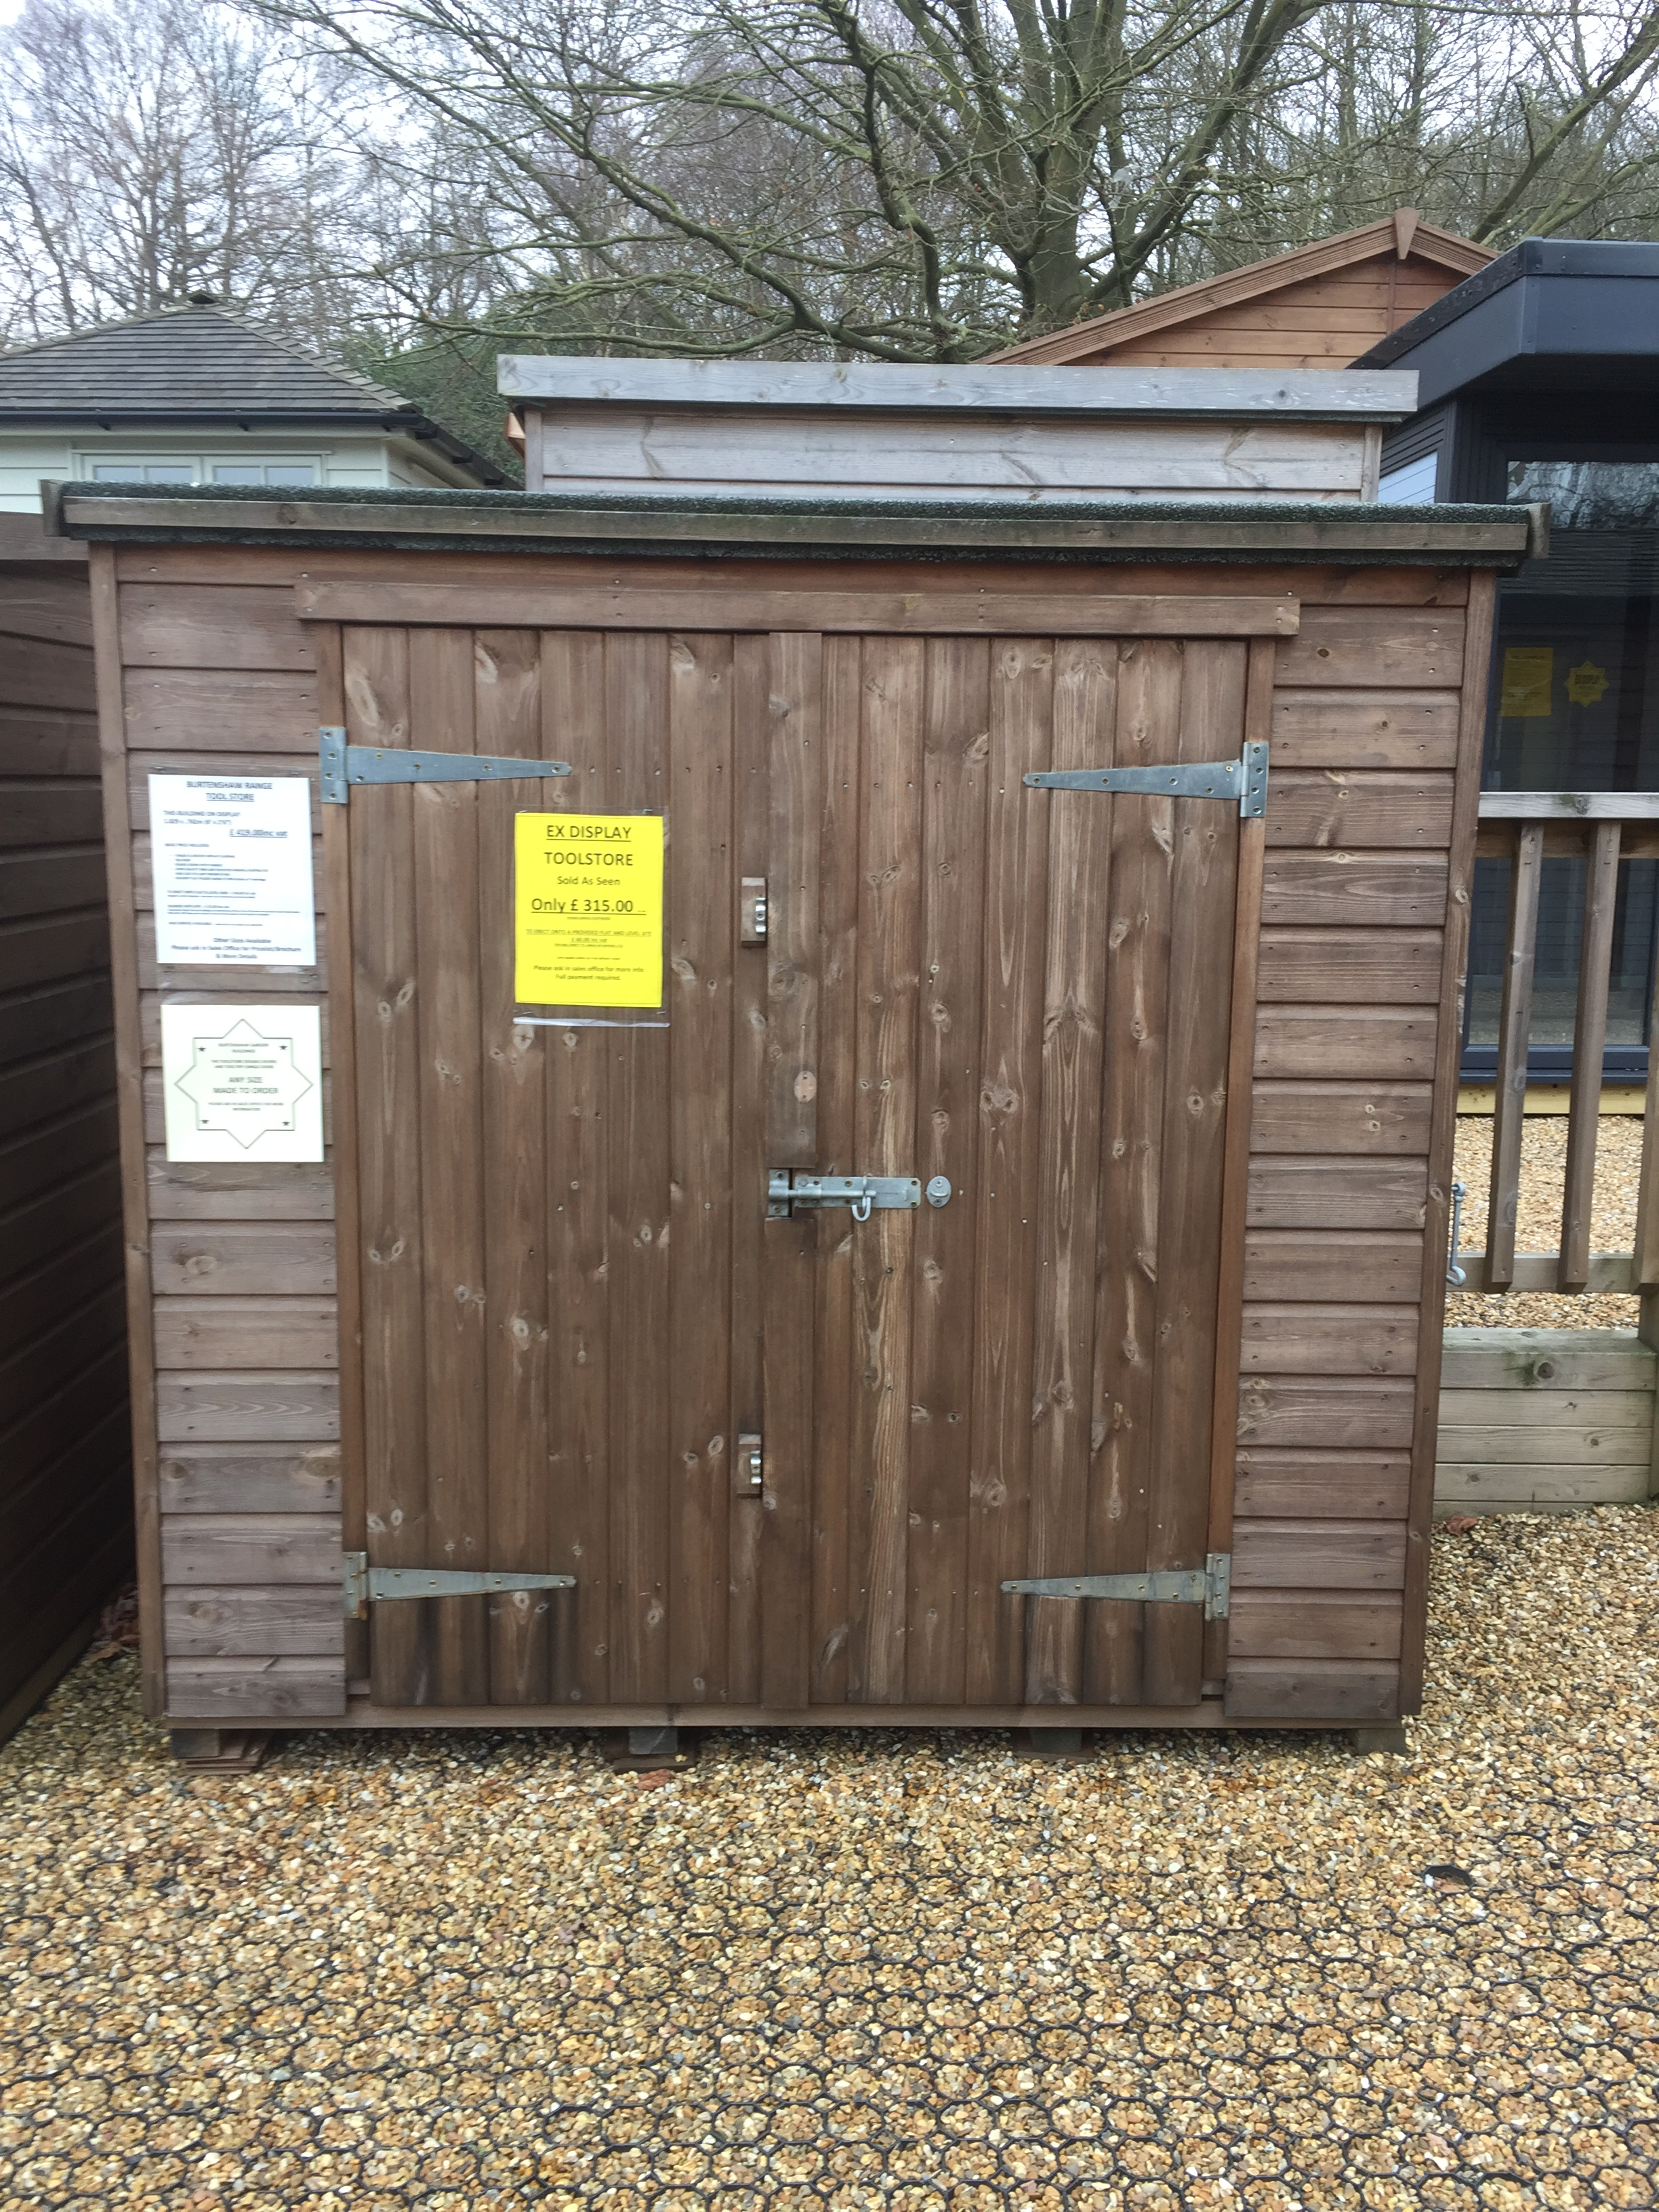 "<p id=""boldtitle"">Ex Display</p>6 x 2'6 Toolstore for sale £ 315.00<br/>At our display site within Notcutts at Pembury"